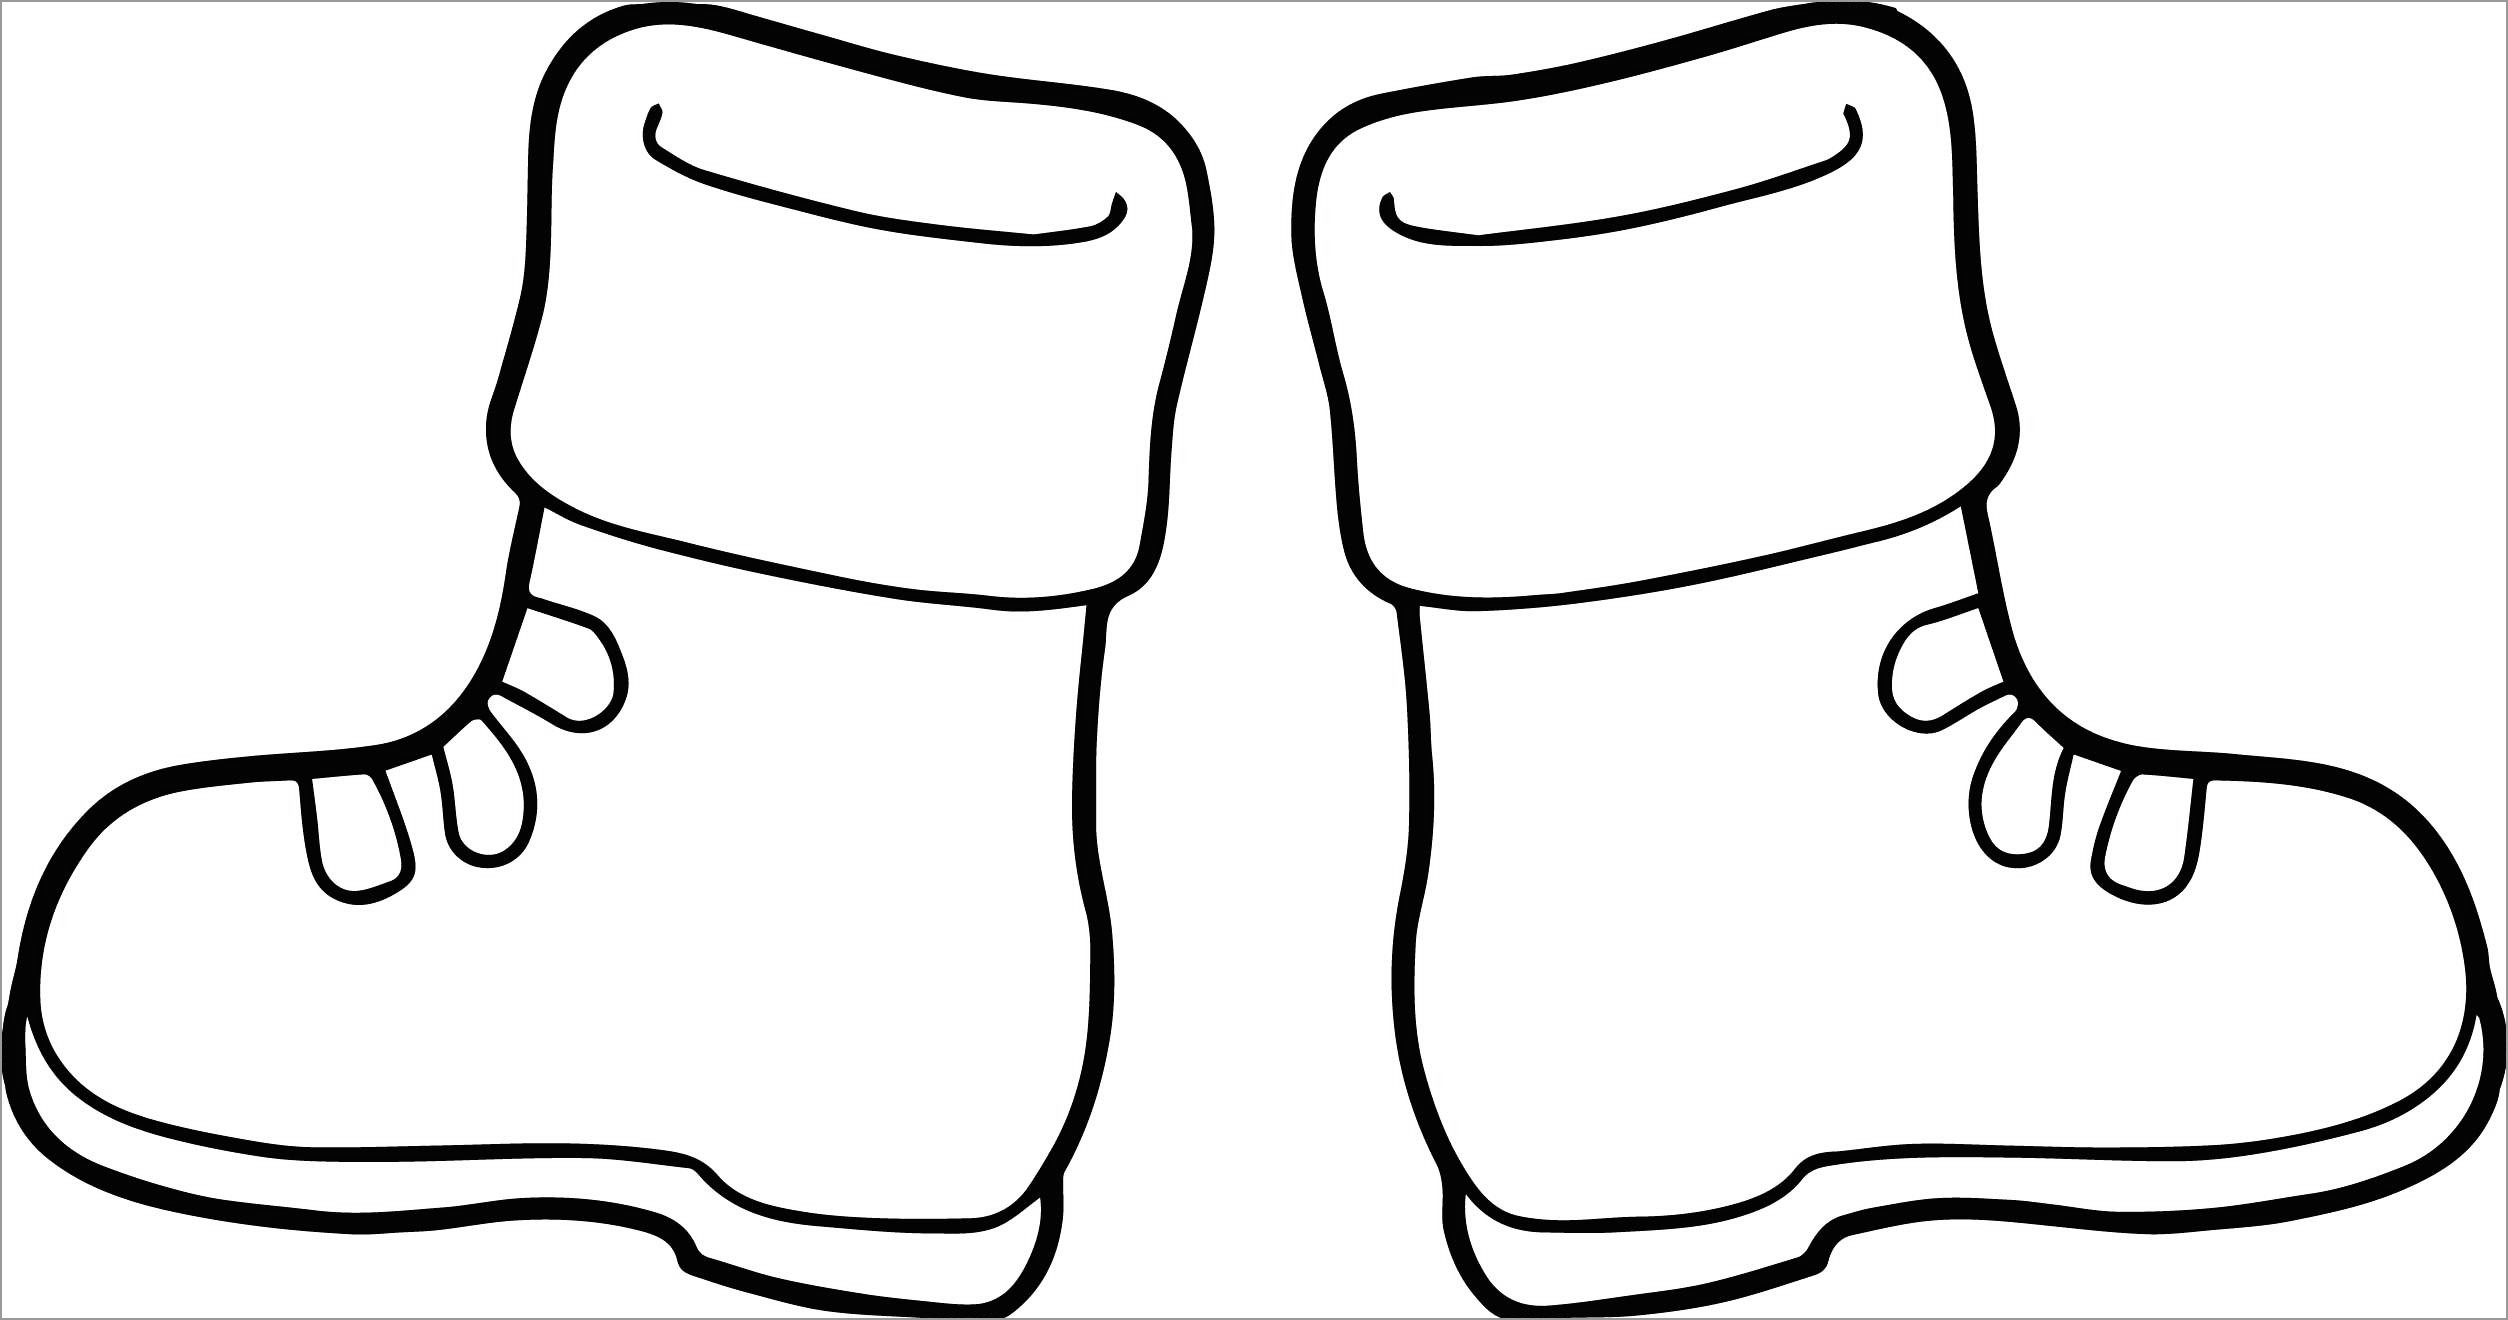 coloring pages boots hiking boots drawing at getdrawings free download pages coloring boots